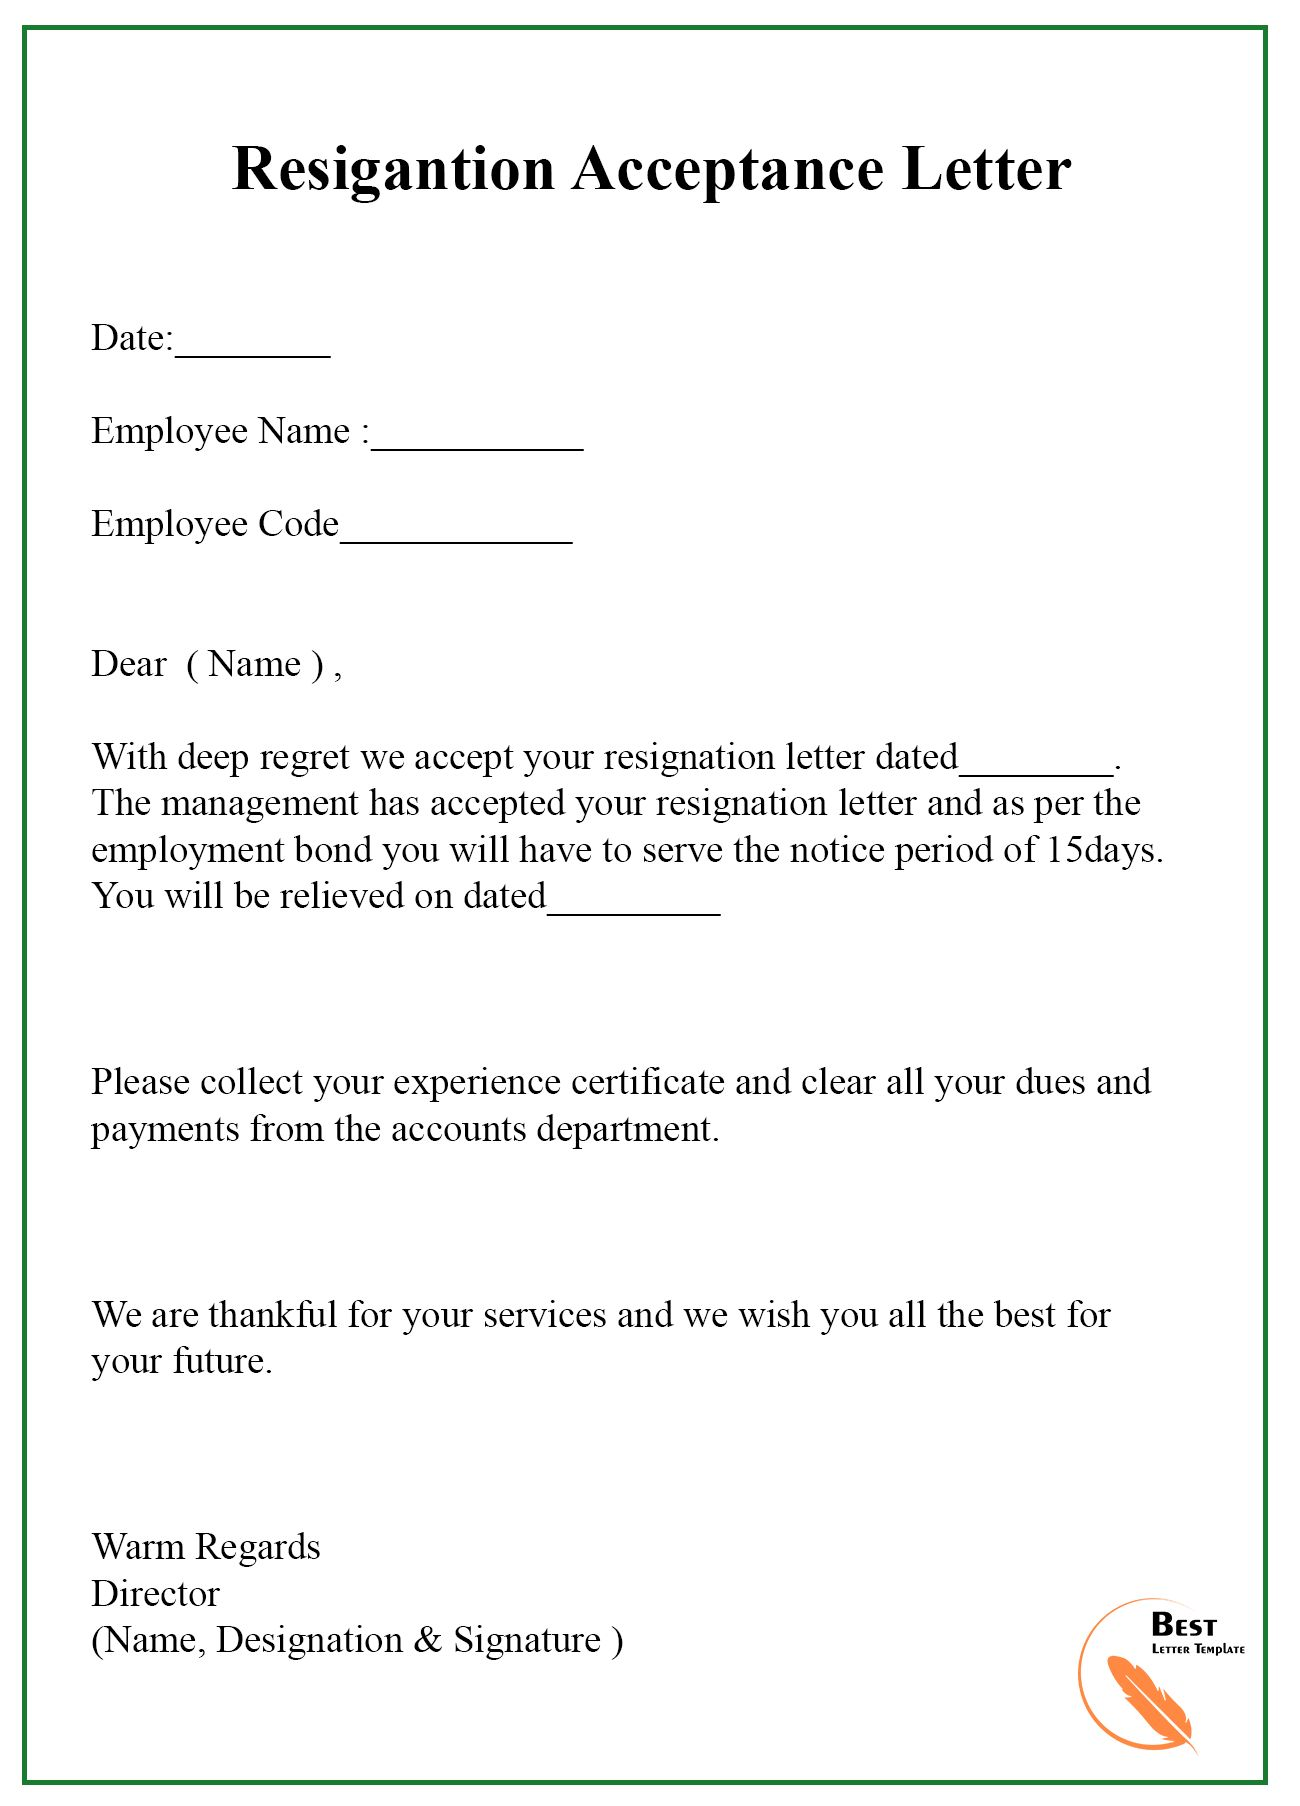 9+ Resignation Acceptance Letter Template [Examples